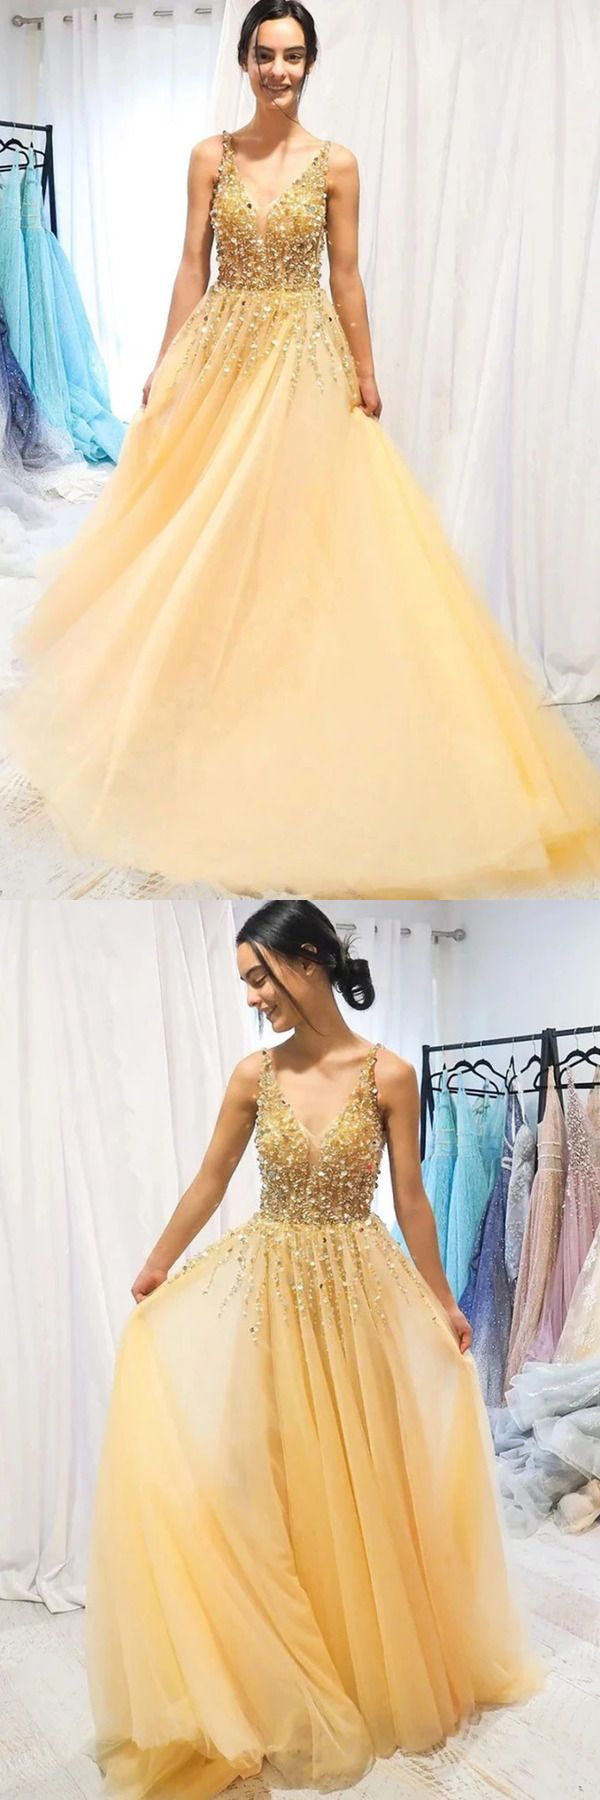 A Line Floor Length Tulle Prom Dress With Sequins Cheap V Neck Long Formal Stcp1njg7jc Cheap Formal Dresses V Neck Prom Dresses Tulle Prom Dress [ 1800 x 600 Pixel ]